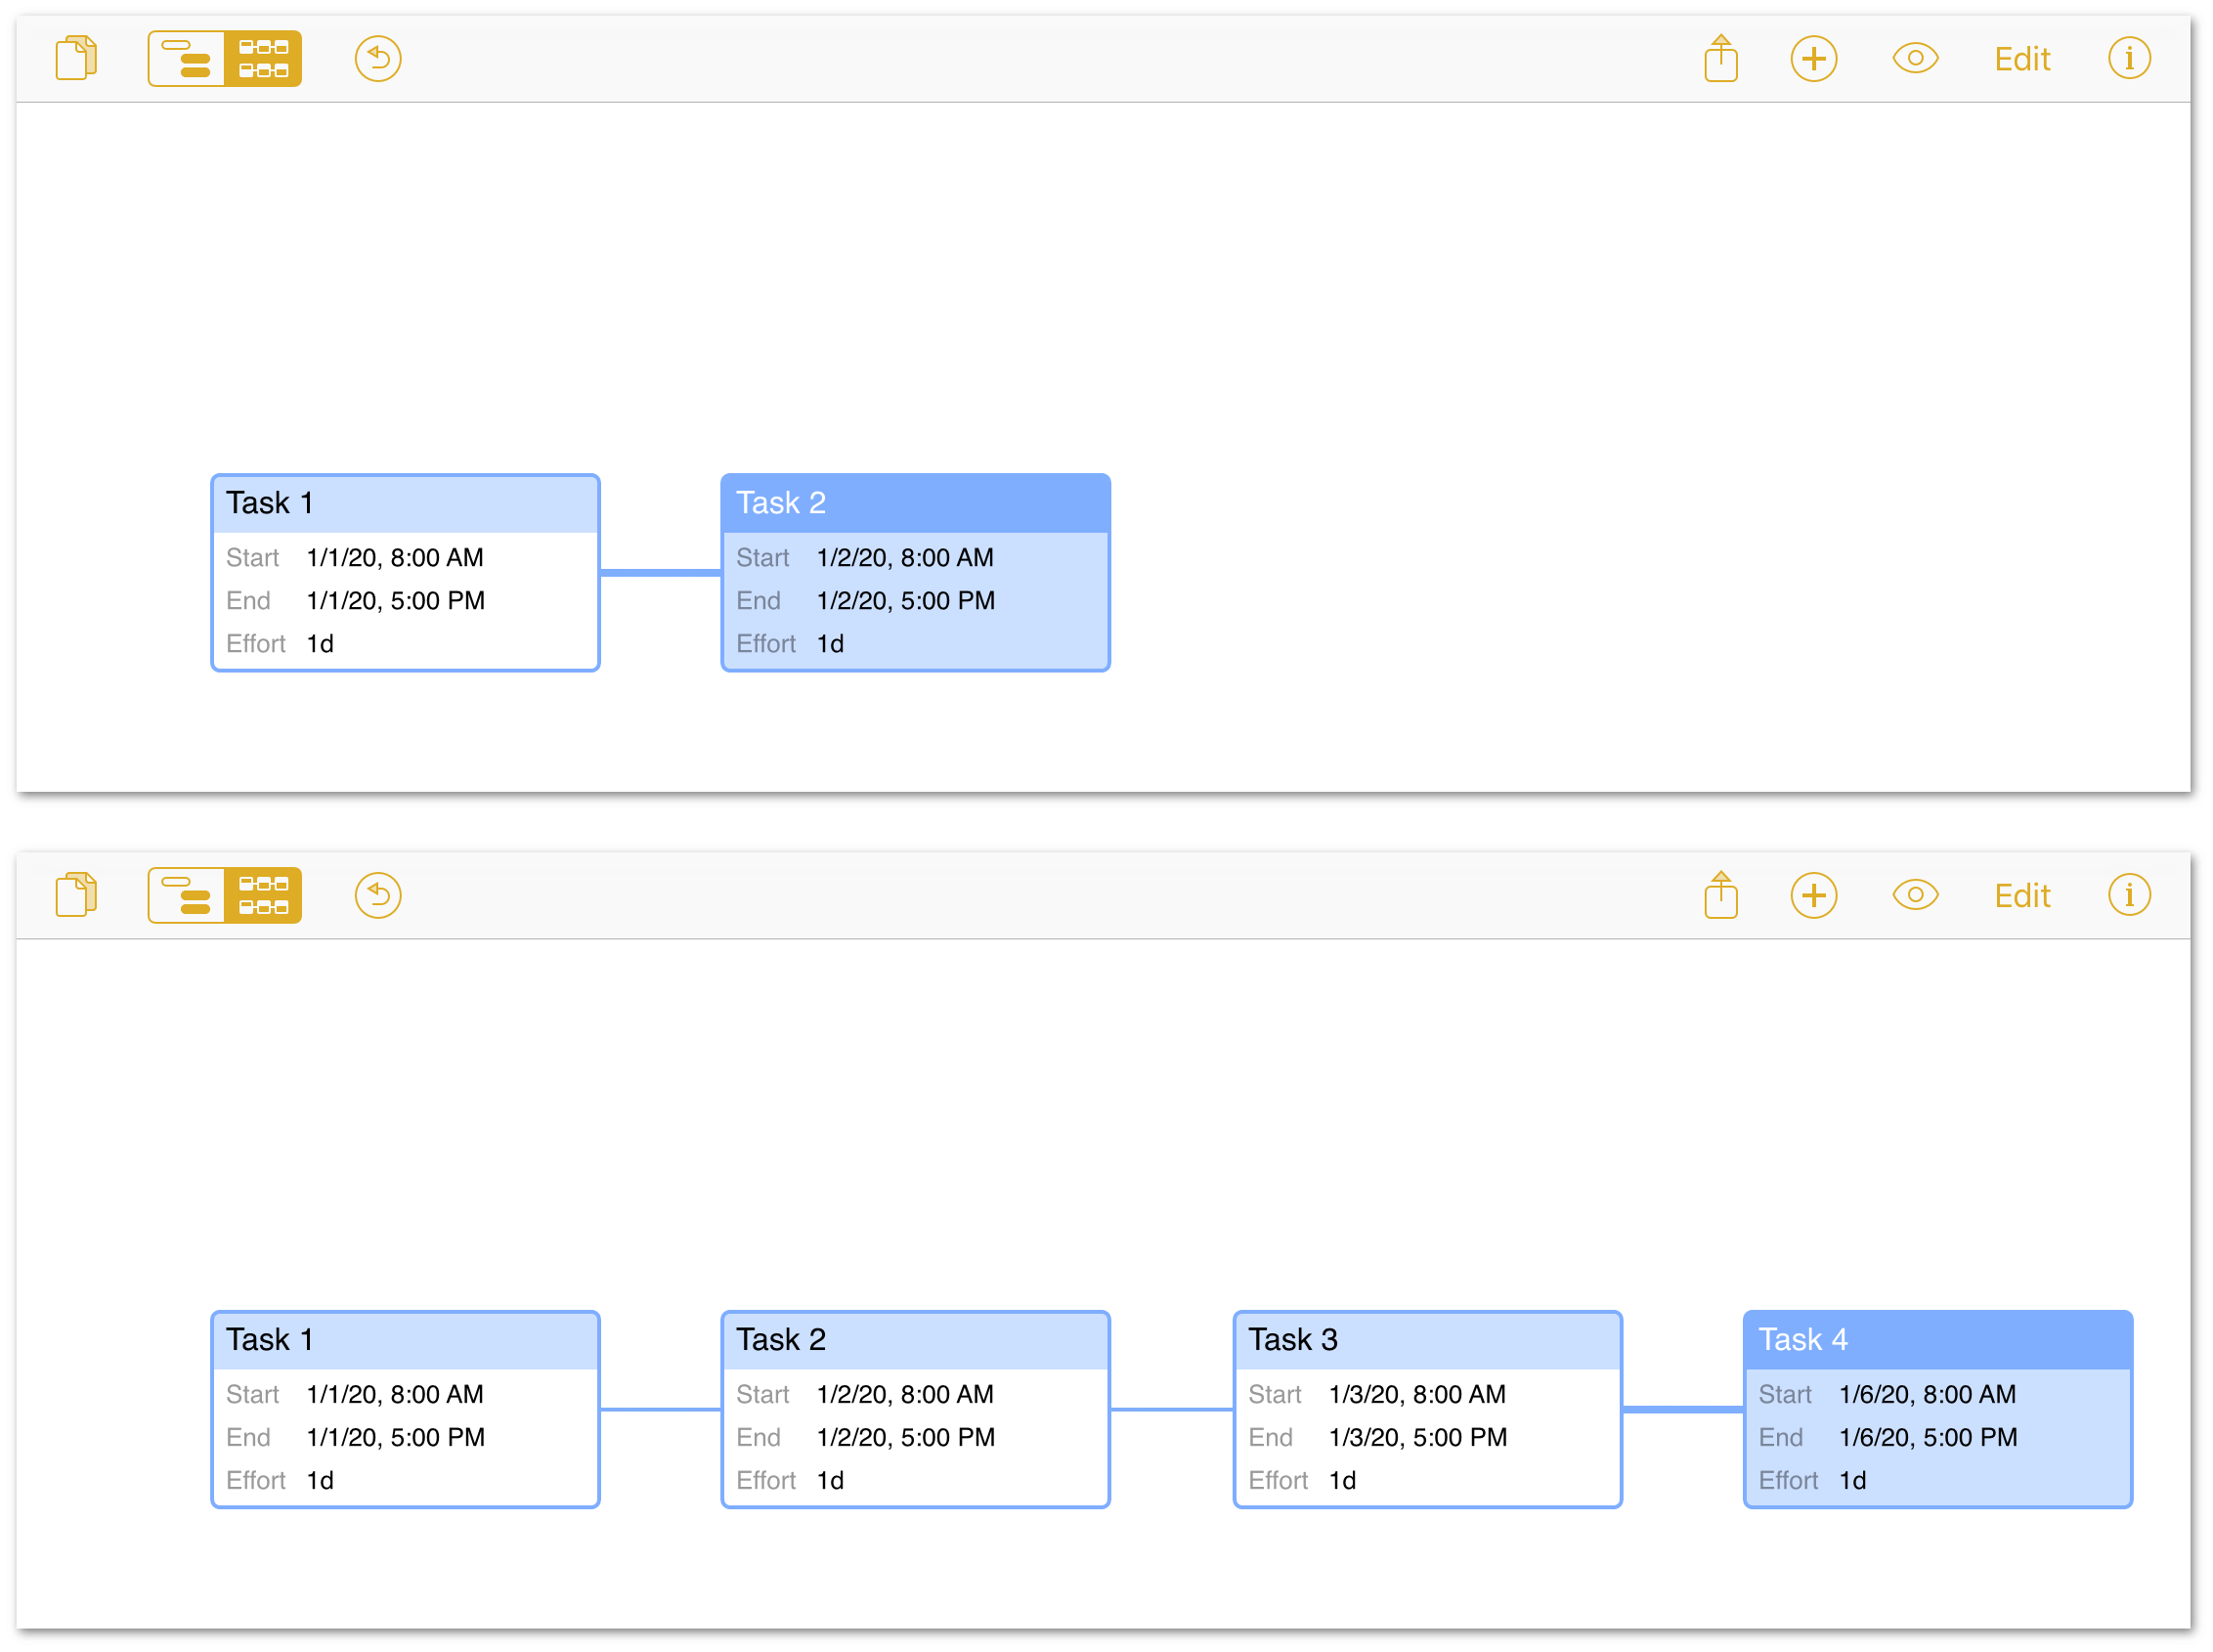 A chain of tasks in Network View, all with finish-start dependencies.